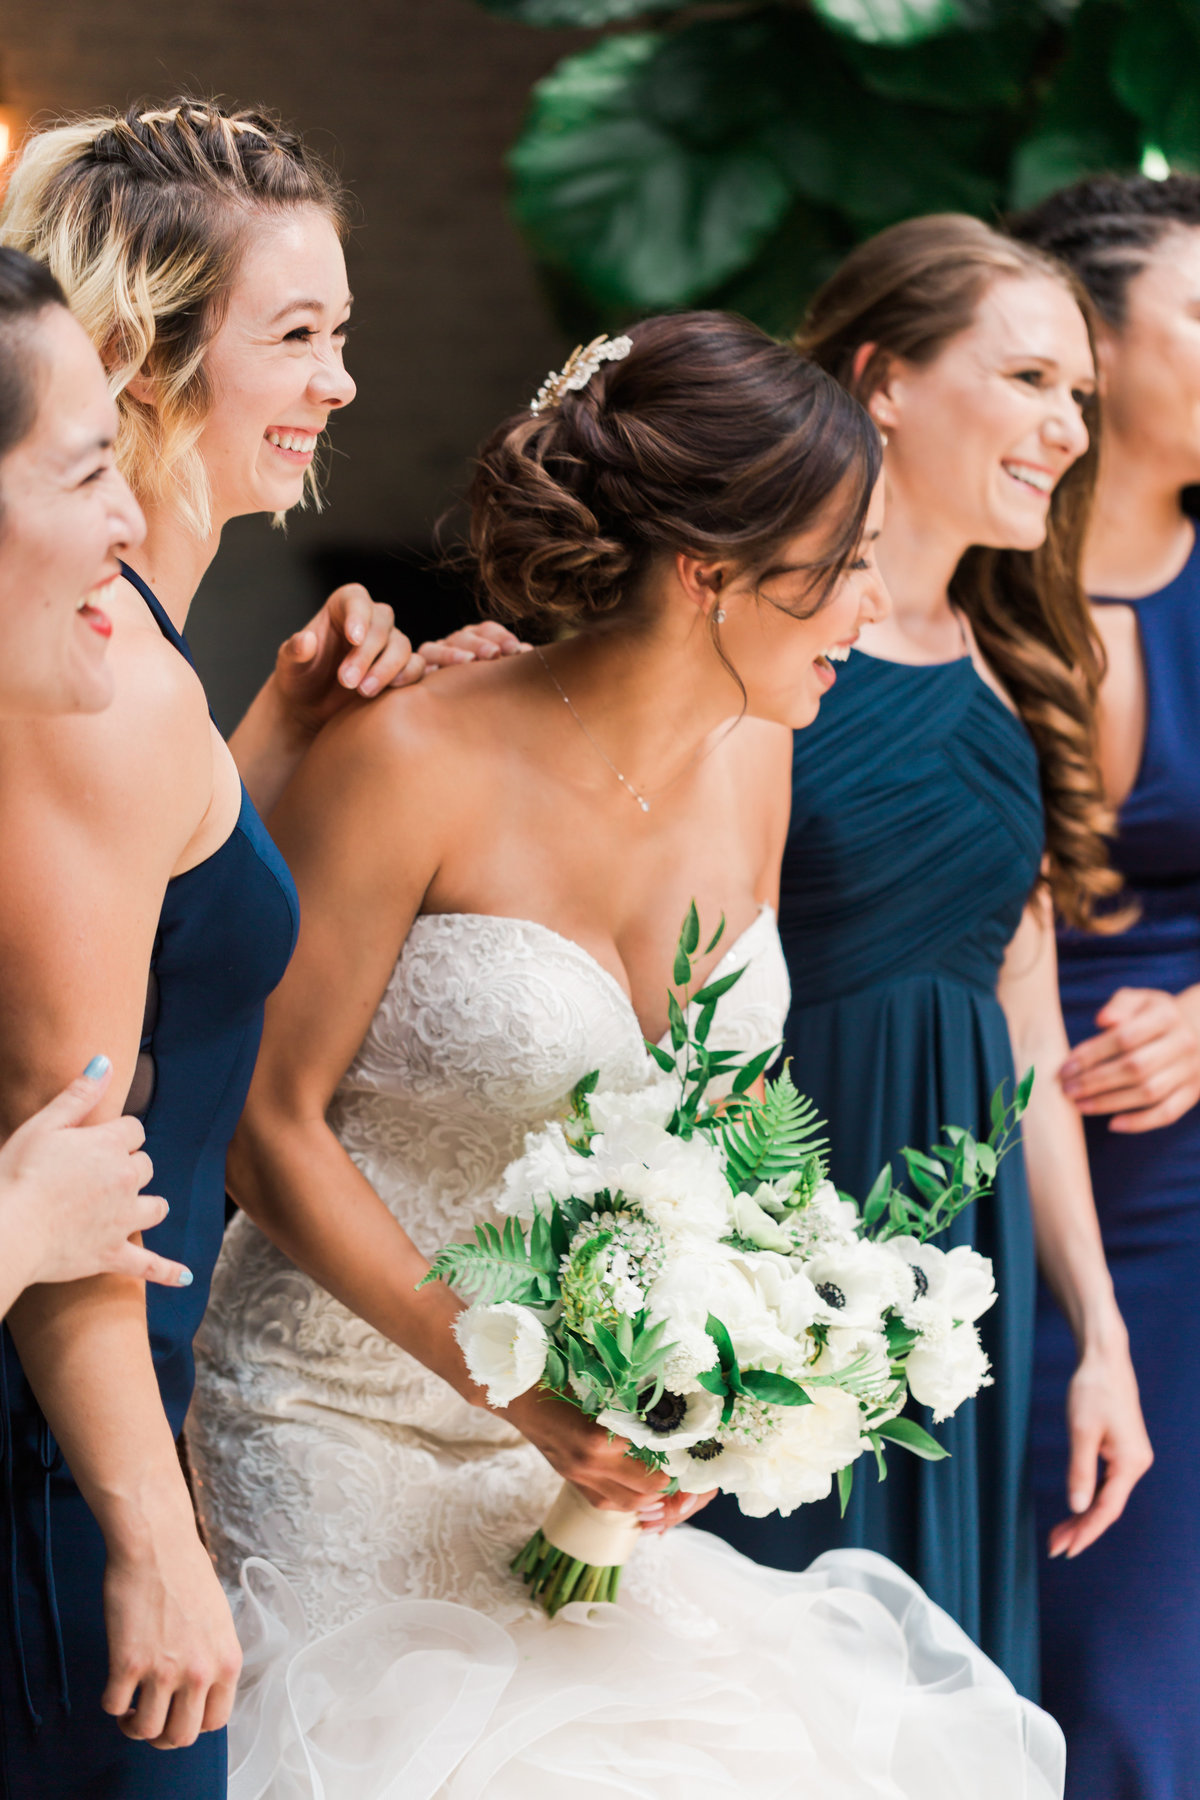 Ebell_Los_Angeles_Malcolm_Smith_NFL_Navy_Brass_Wedding_Valorie_Darling_Photography - 28 of 122